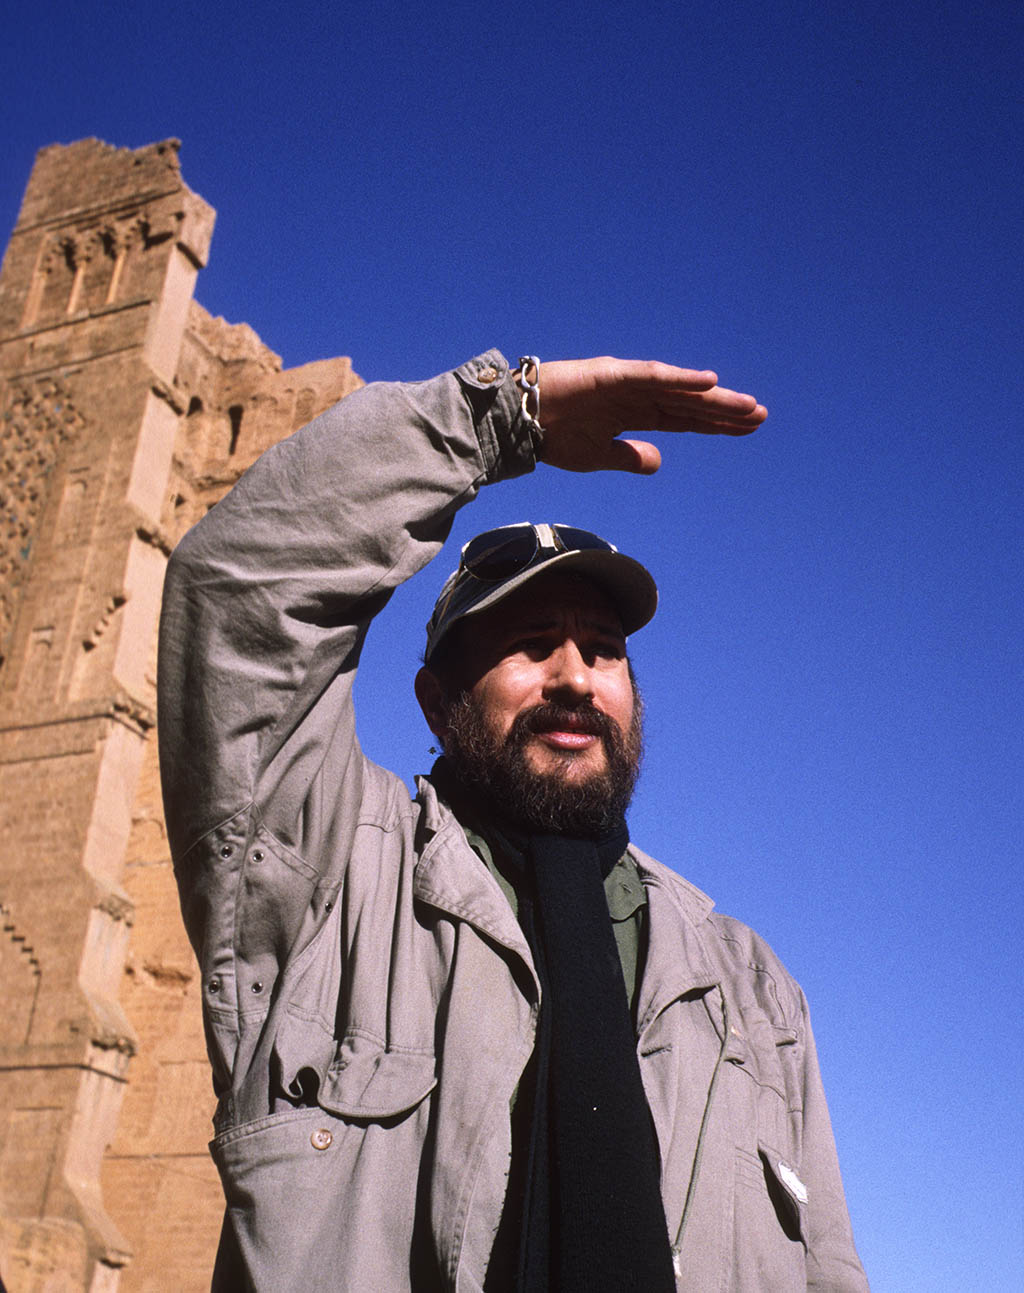 Rachid Baba at the Mansourah Tlemcen Algeria